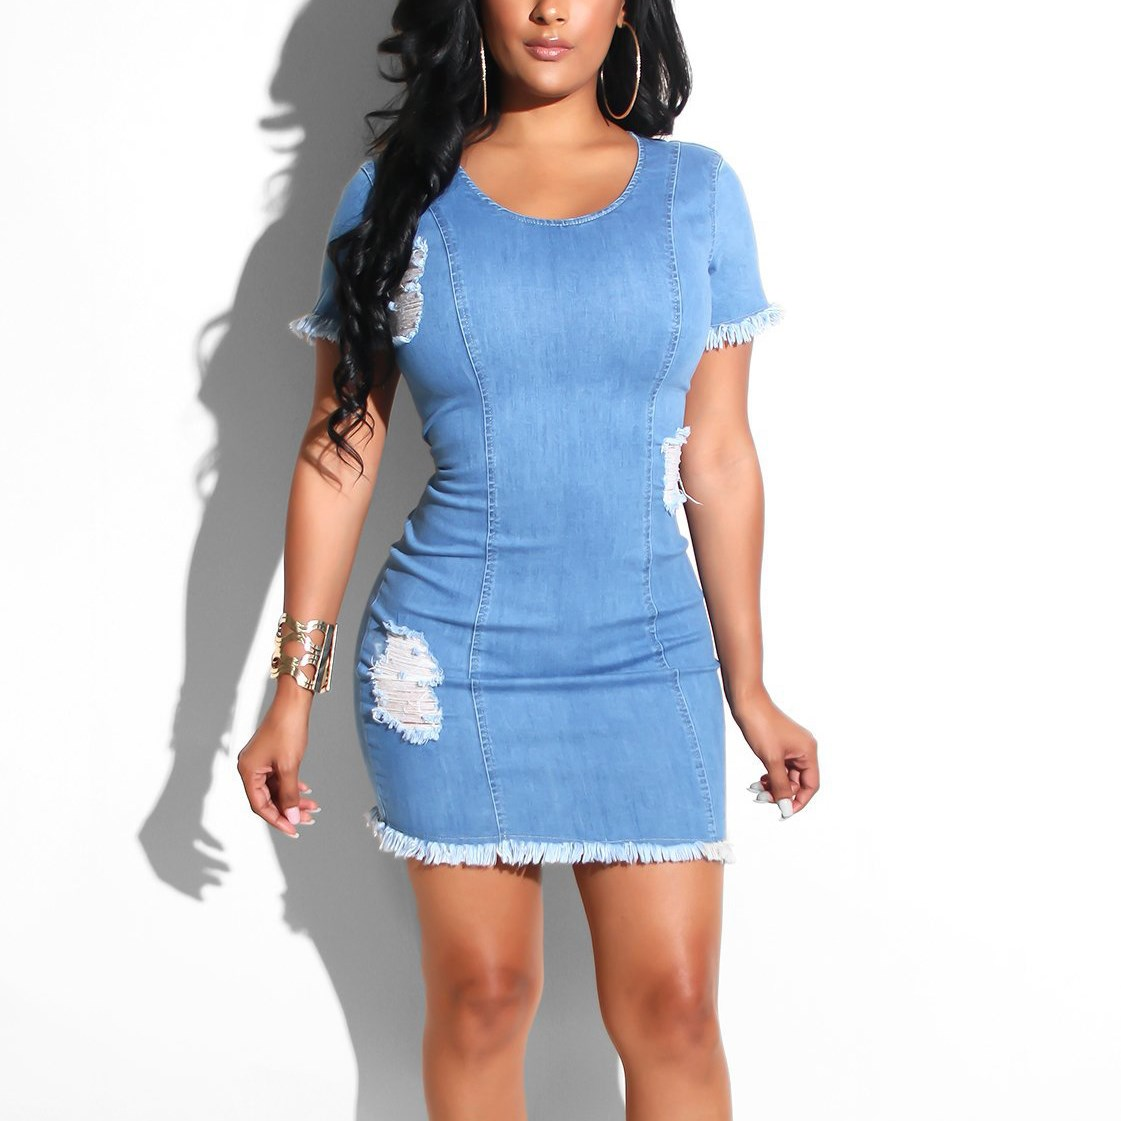 Bodycon Mini <font><b>Dress</b></font> Women Summer <font><b>Dress</b></font> Vestidos 2019 <font><b>Jeans</b></font> <font><b>Dress</b></font> <font><b>Sexy</b></font> Ladies Denim <font><b>Dress</b></font> image